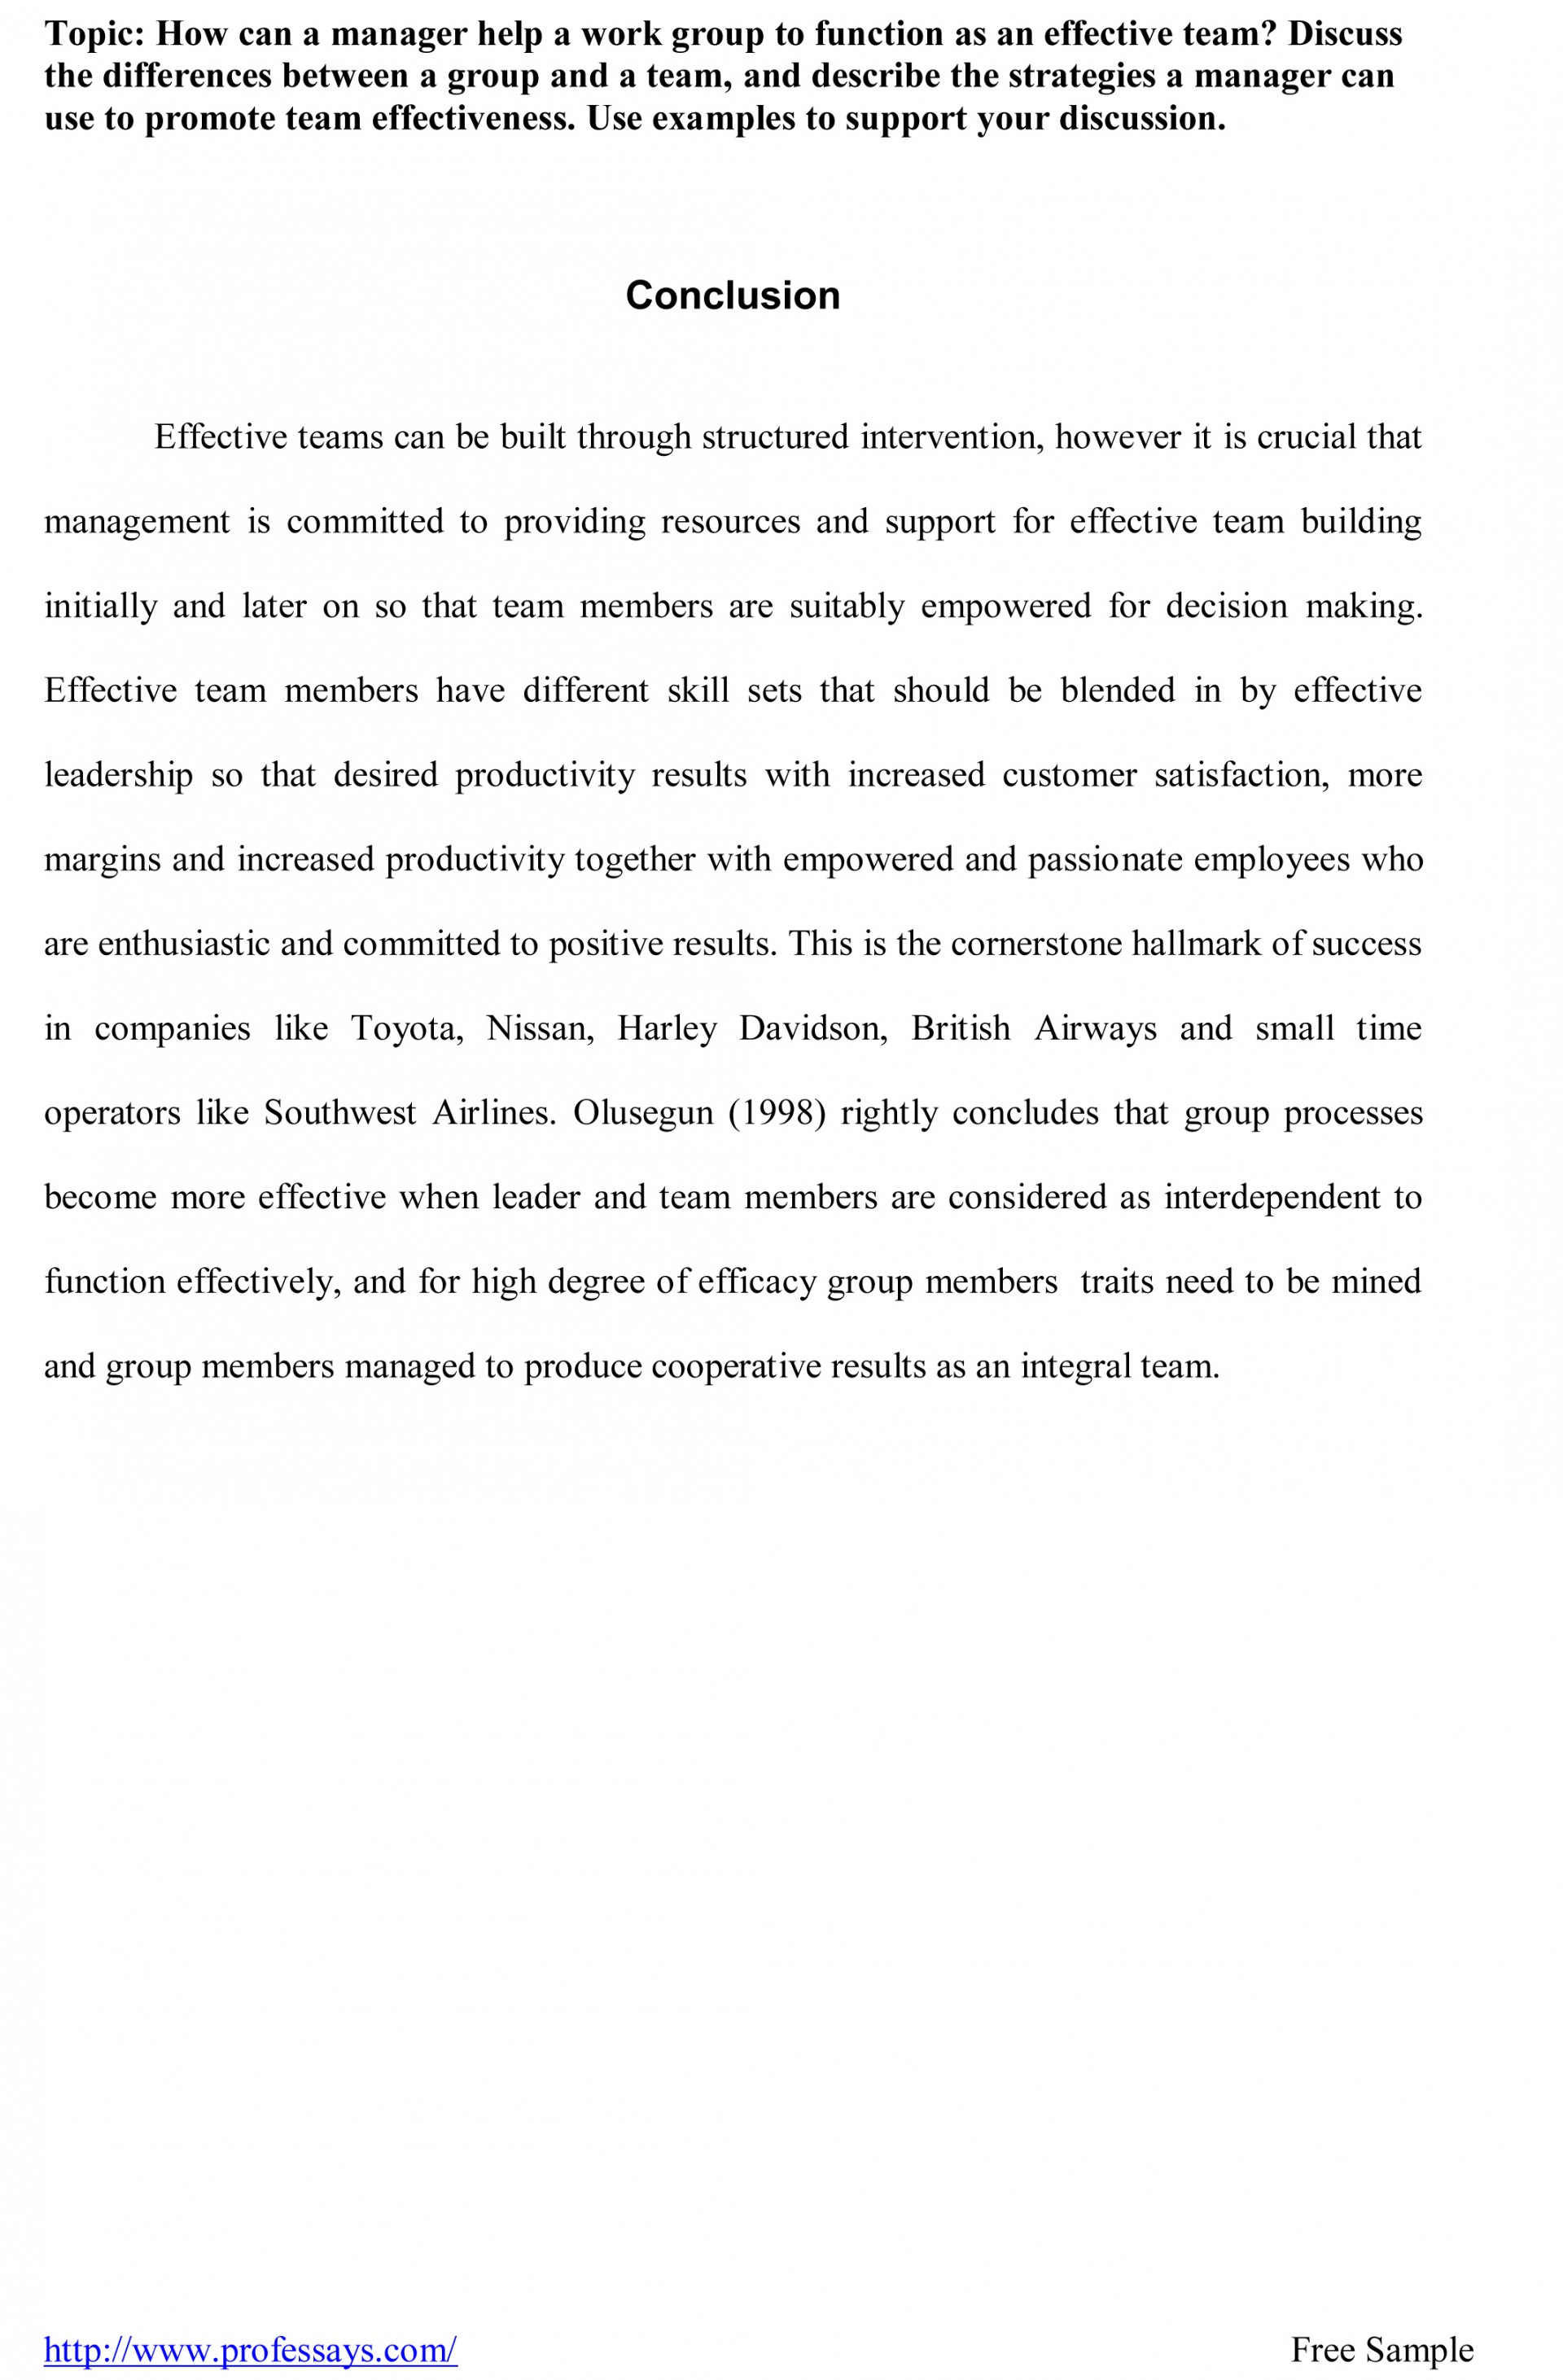 002 Conclusion Ideas For Research Paper Sample Marvelous A 1920